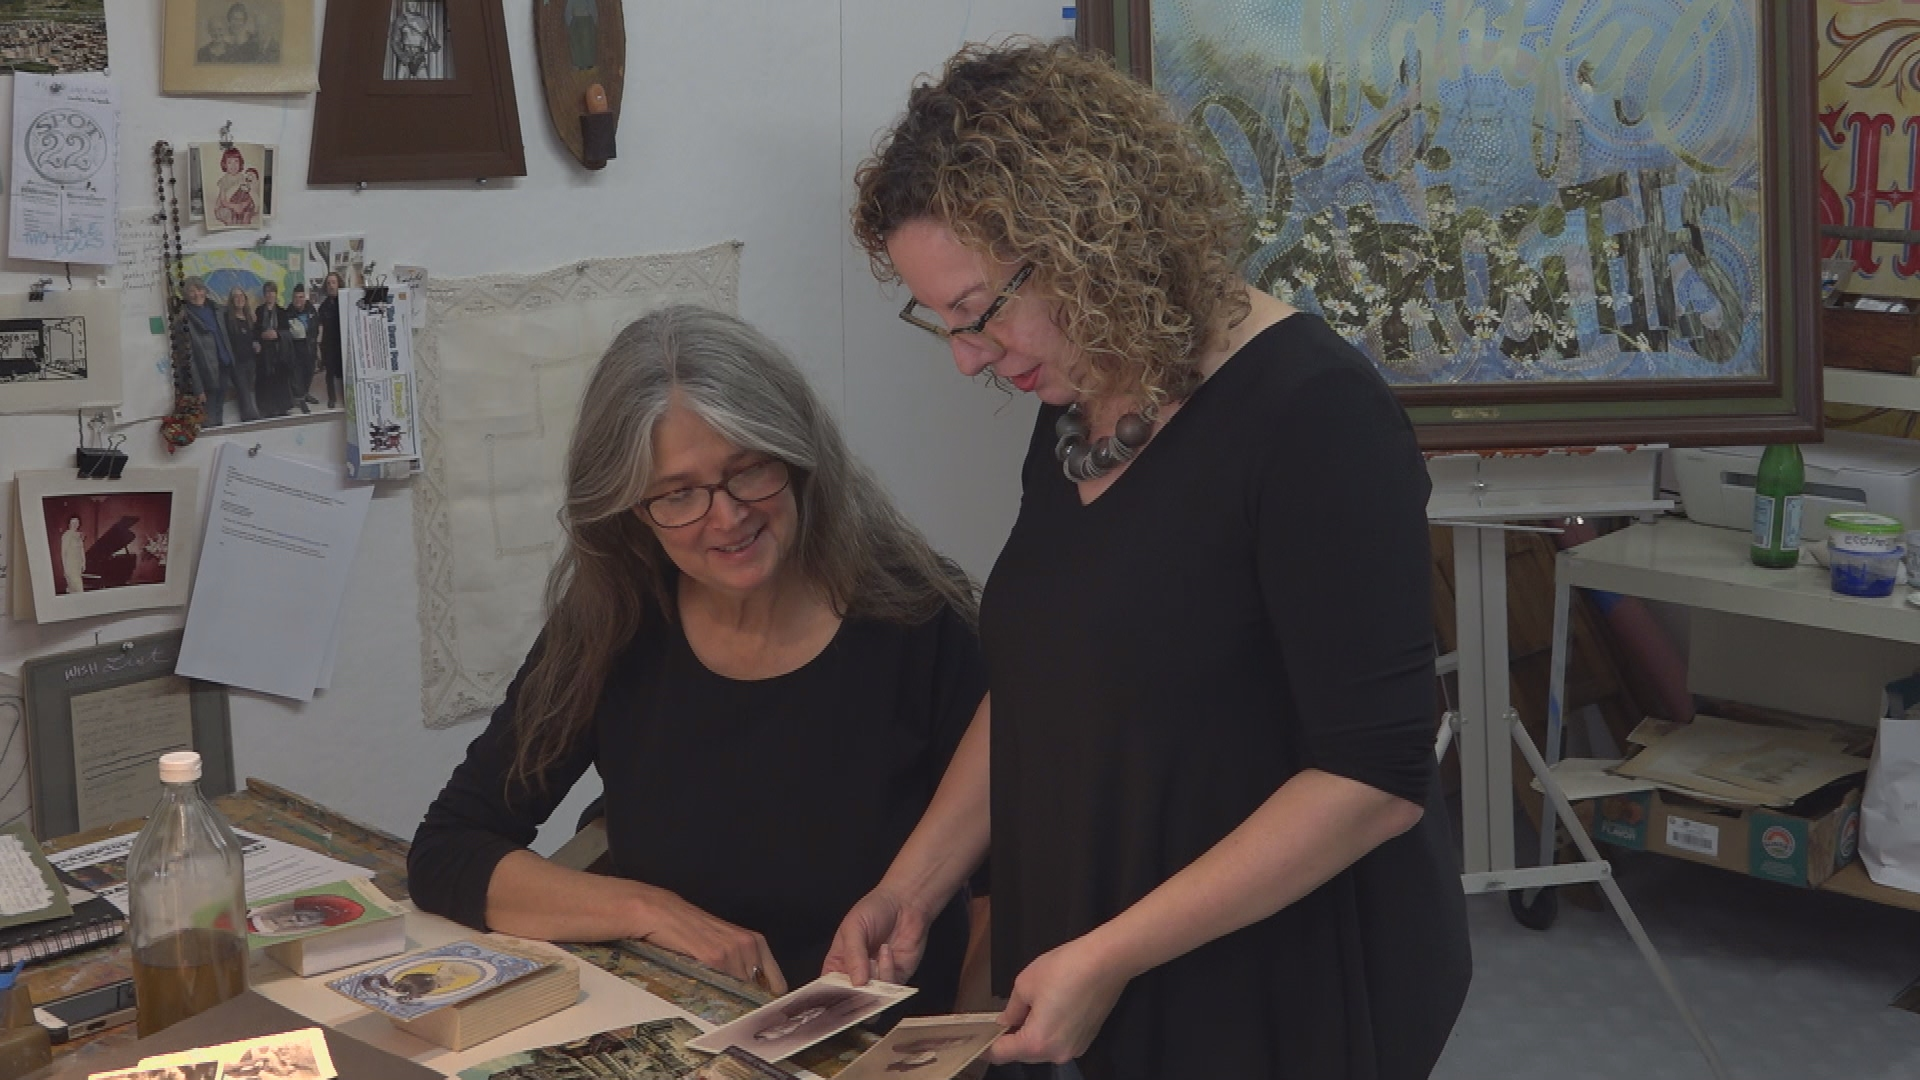 "Vintage photography collector Stacy Waldman & side-show ""Banner Queen"" artist Amy Johnquest teamed up to open Spot 22 Gallery & studio space in Easthampton."